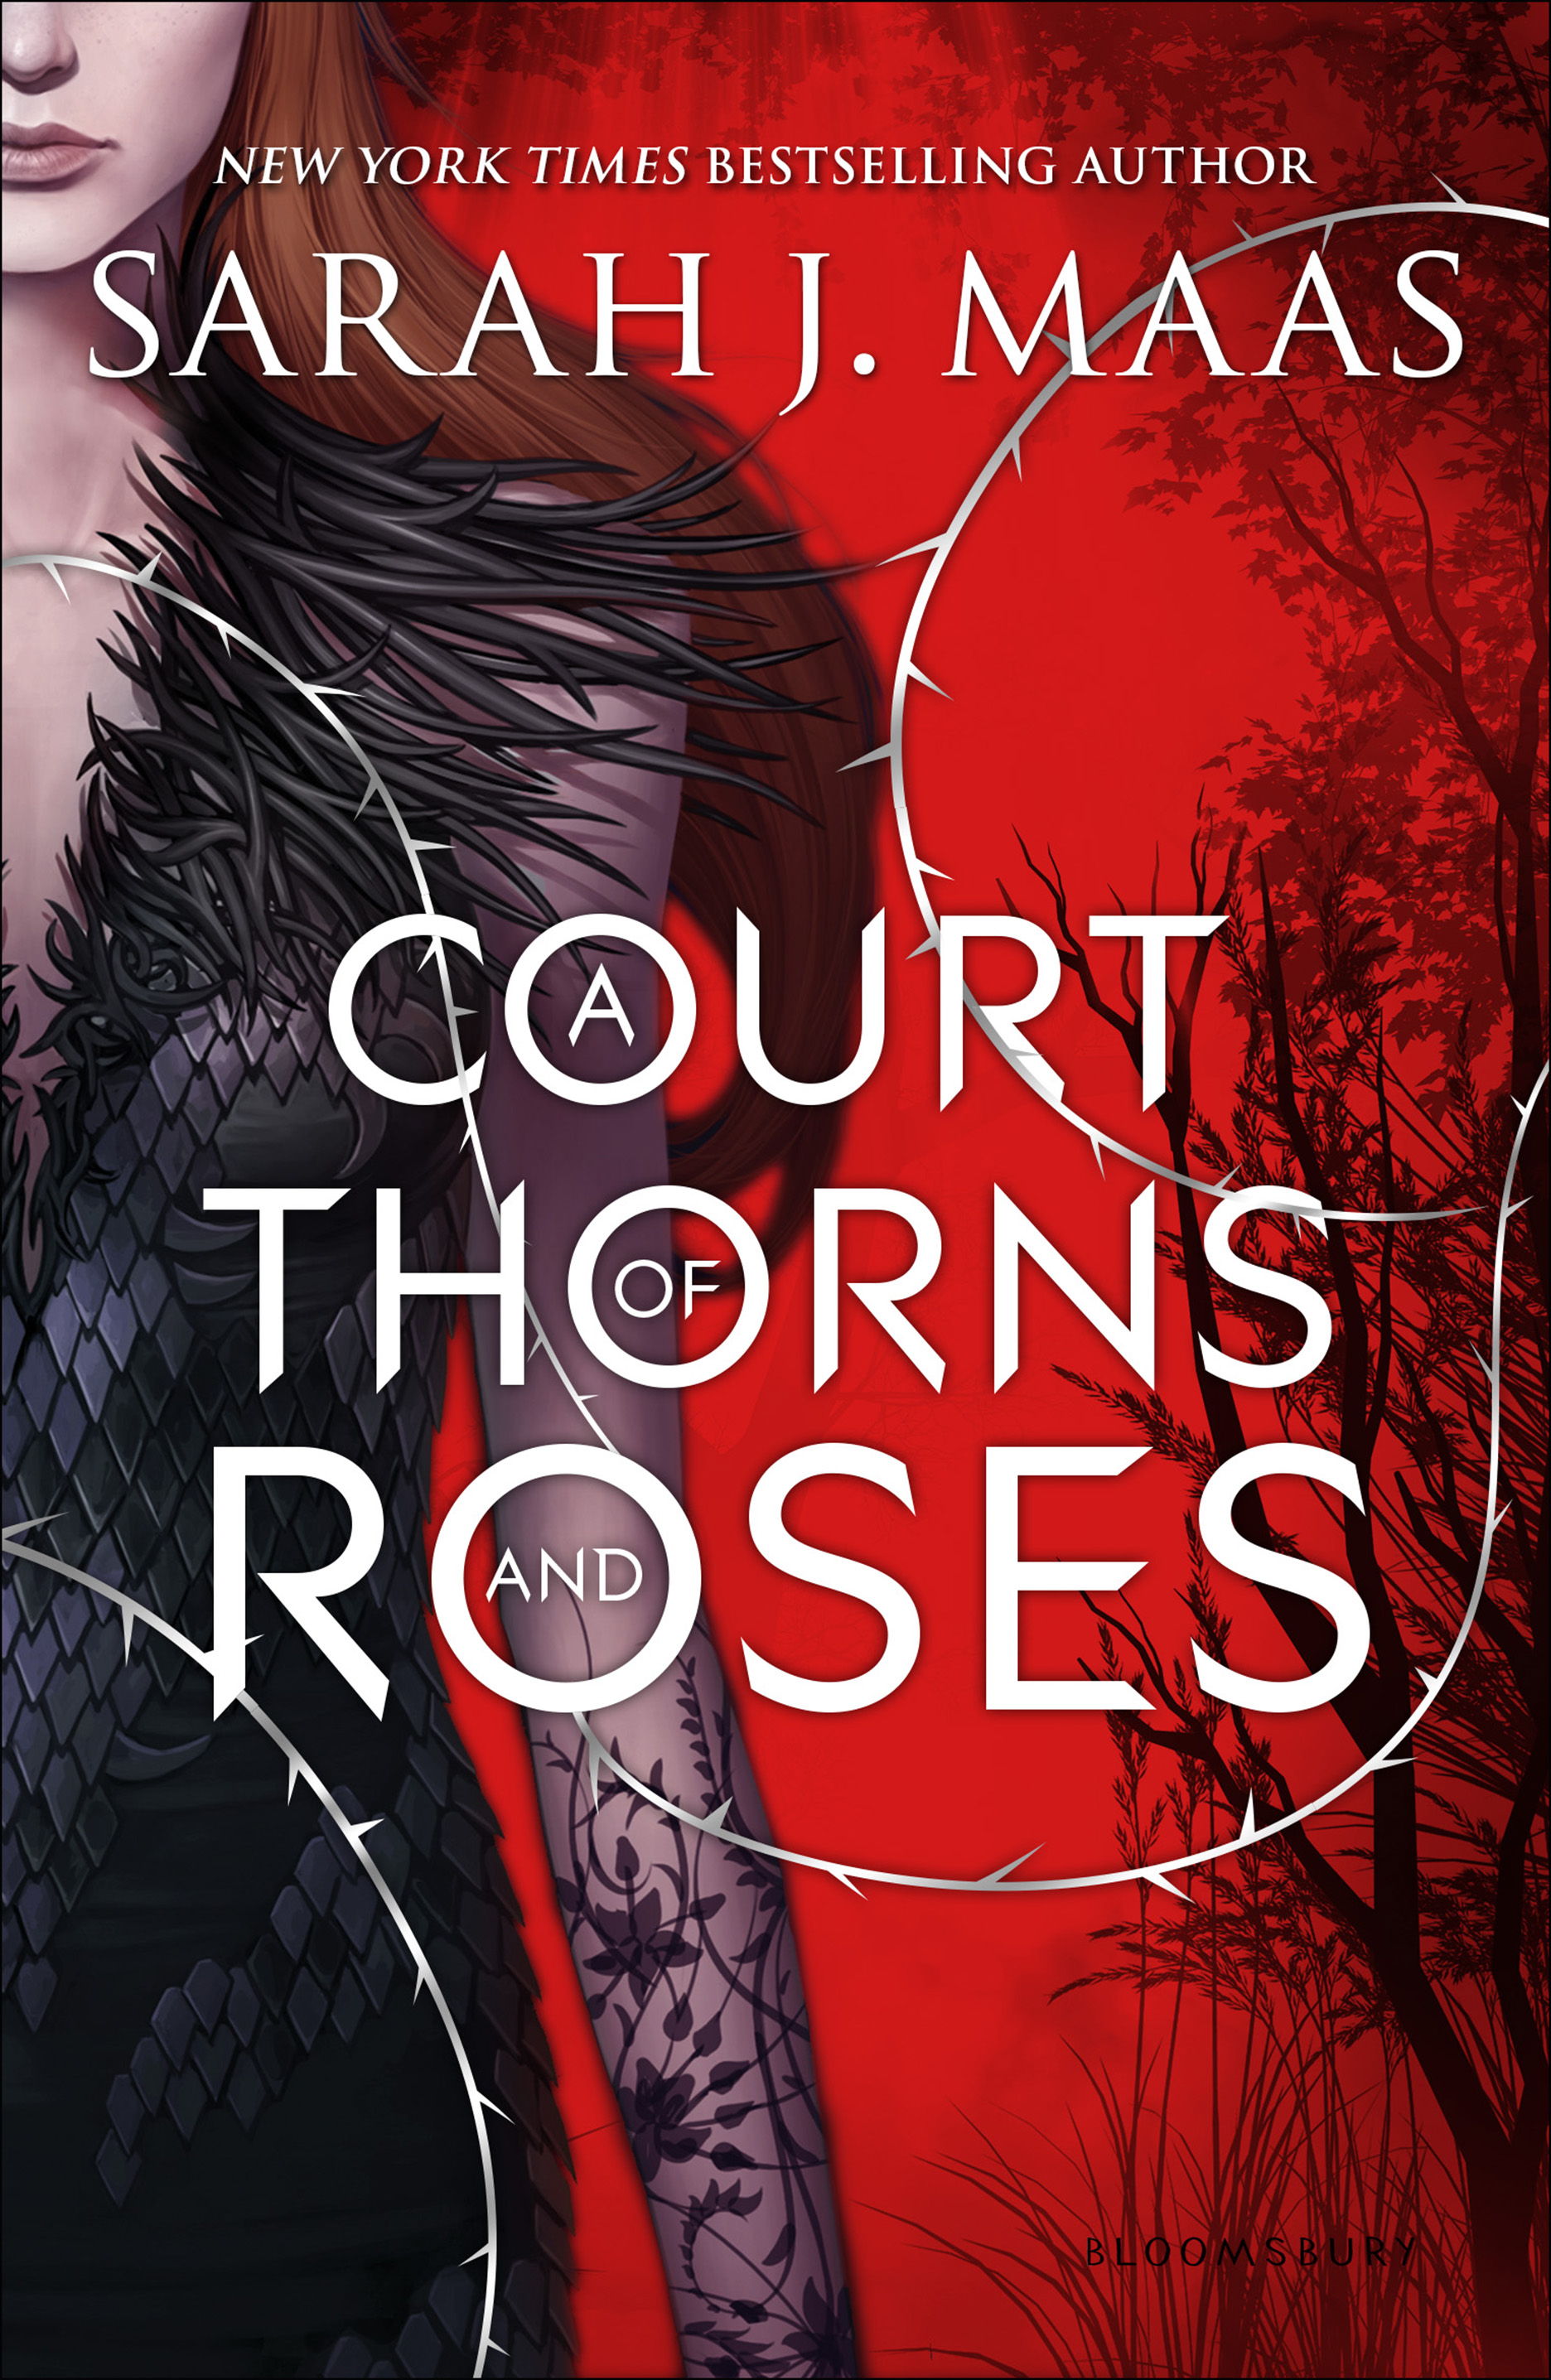 Image result for a court of thorns and roses cover